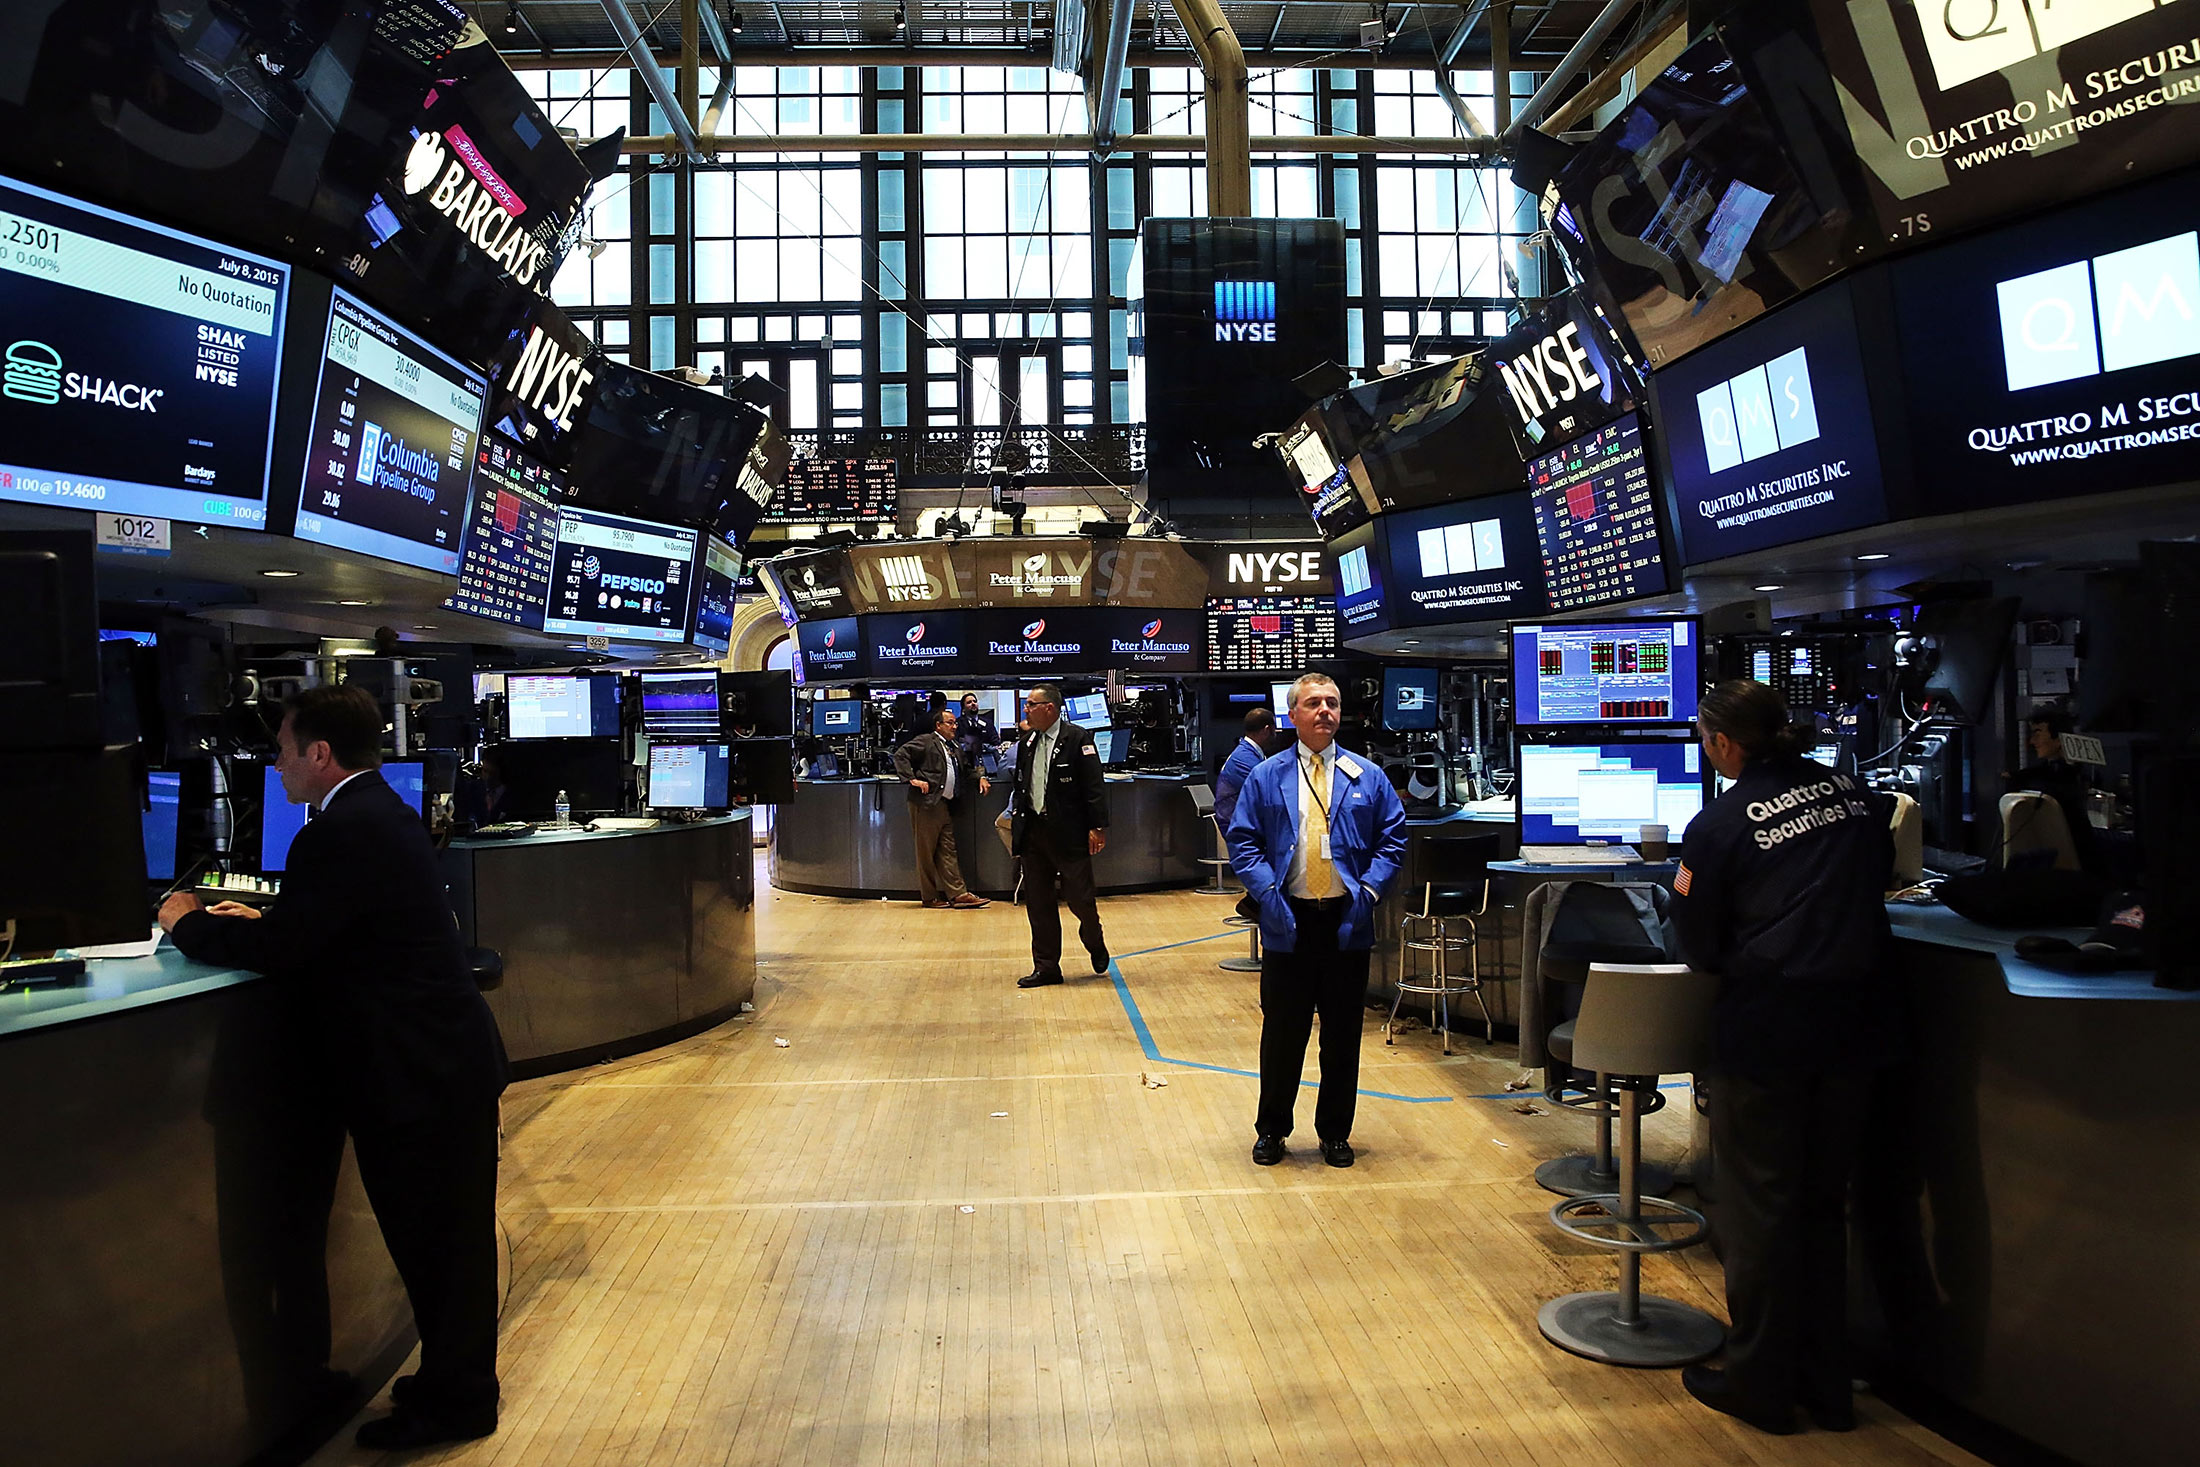 Nyse Told Major Outage In 2015 May Have Broken Securities